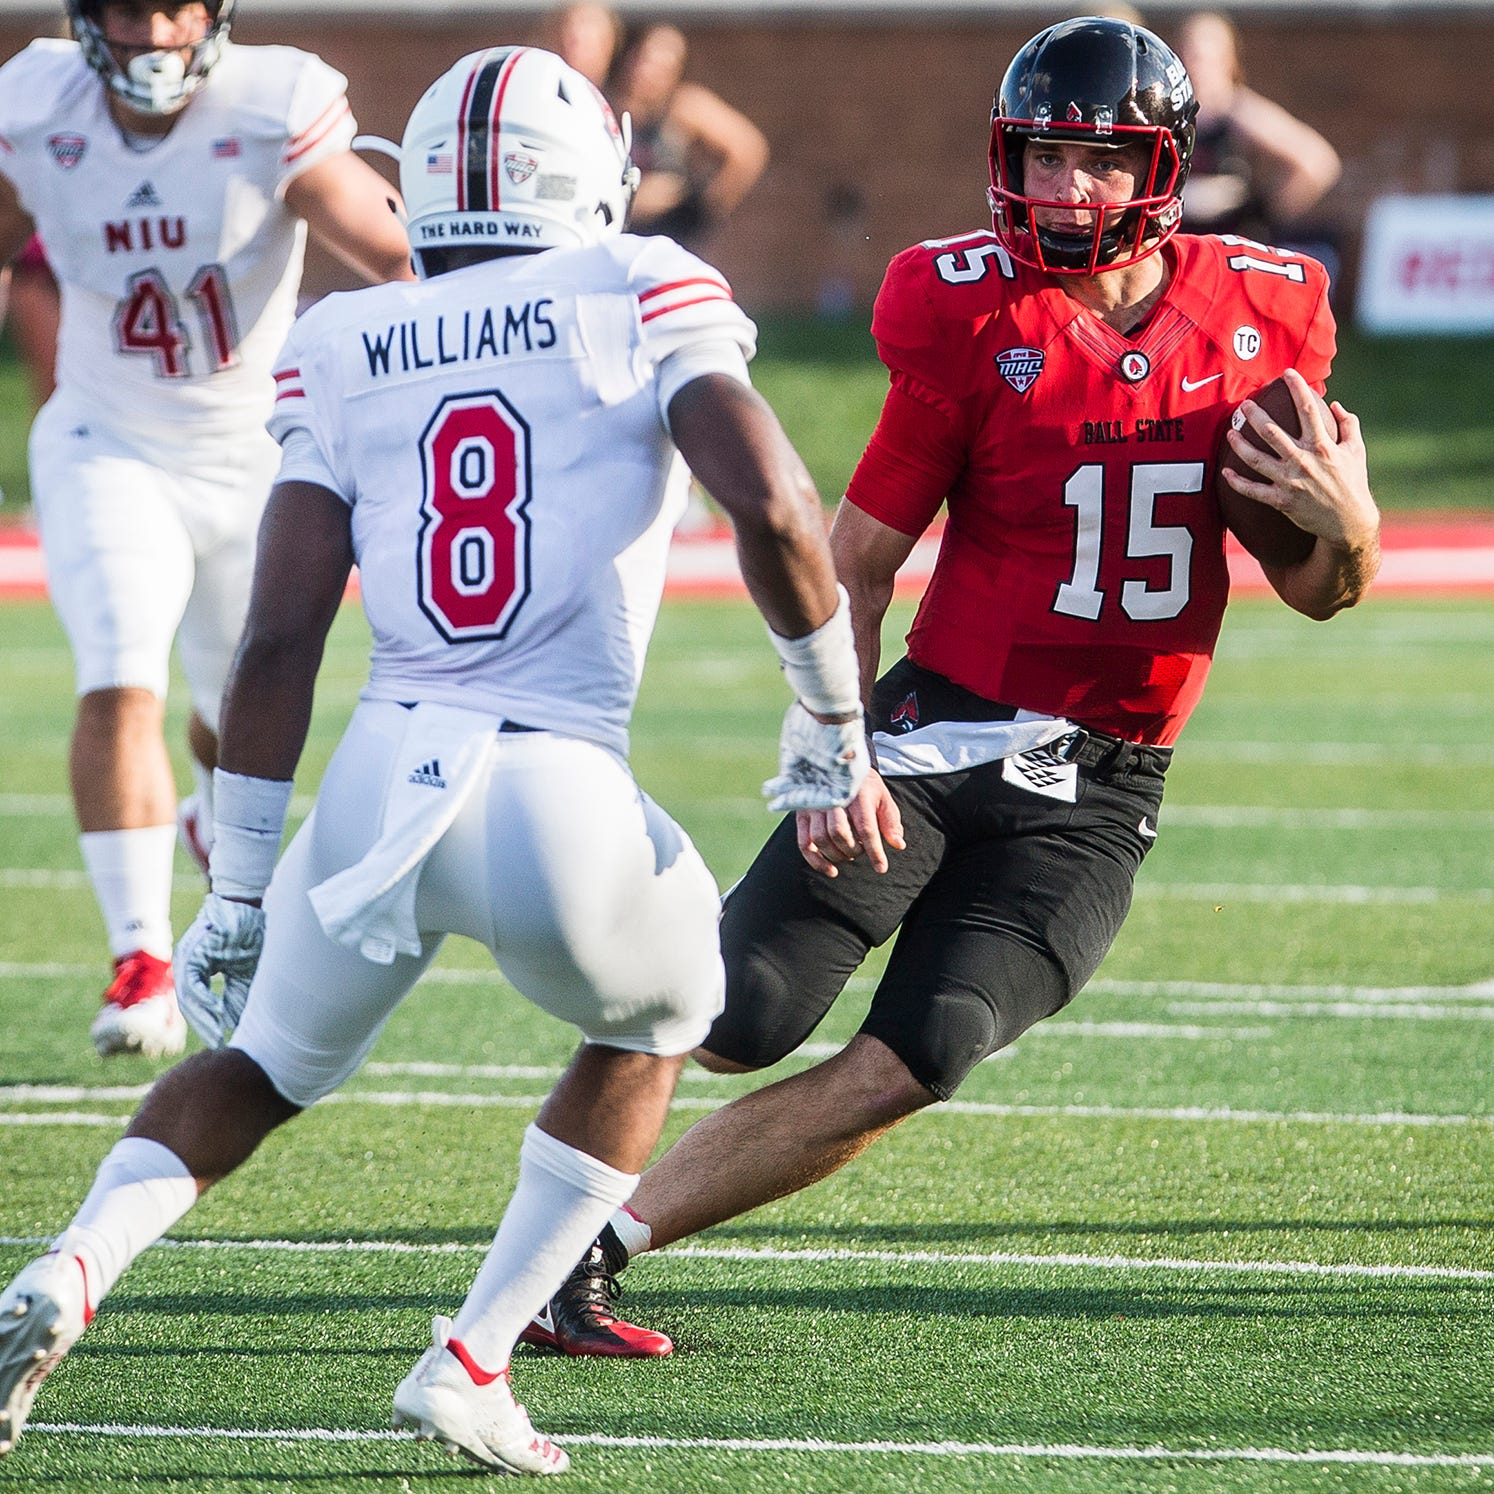 Ball State rallies to knock off Central Michigan on late field goal